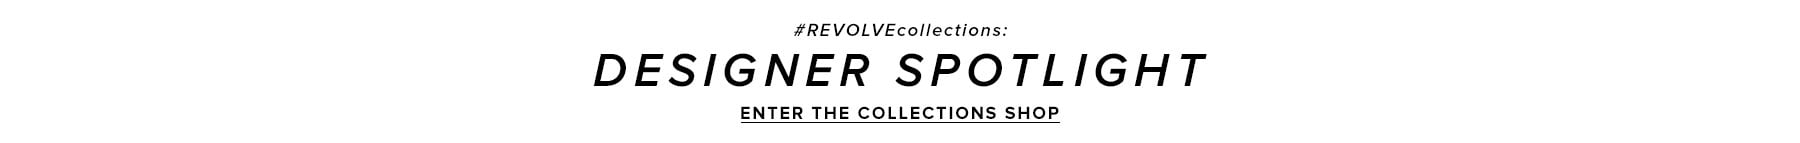 REVOLVEcollections: Designer Spotlight. The 4 most-coveted labels to obsess over now. Enter the collections shop.